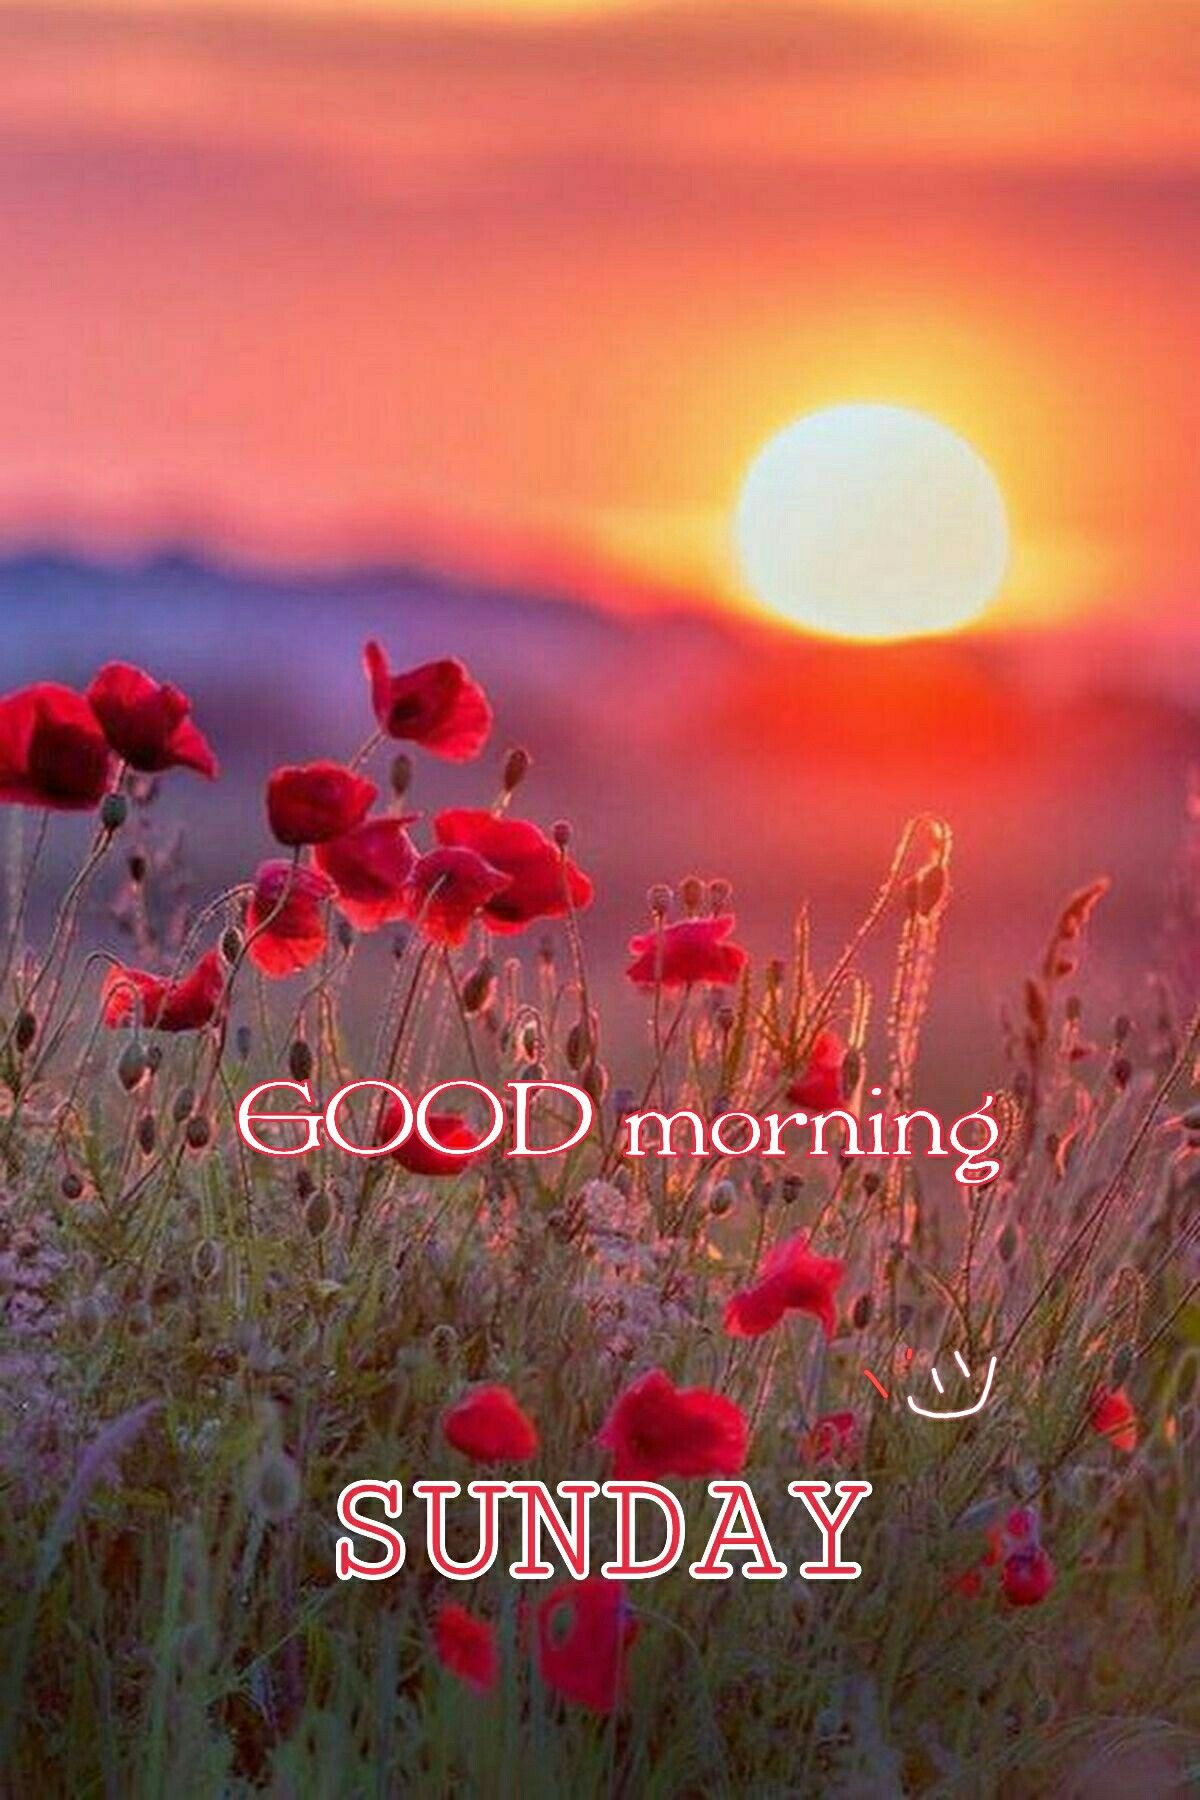 Pin By Ahmed Hatem On Good Morning Good Morning Happy Sunday Happy Sunday Quotes Good Morning Picture